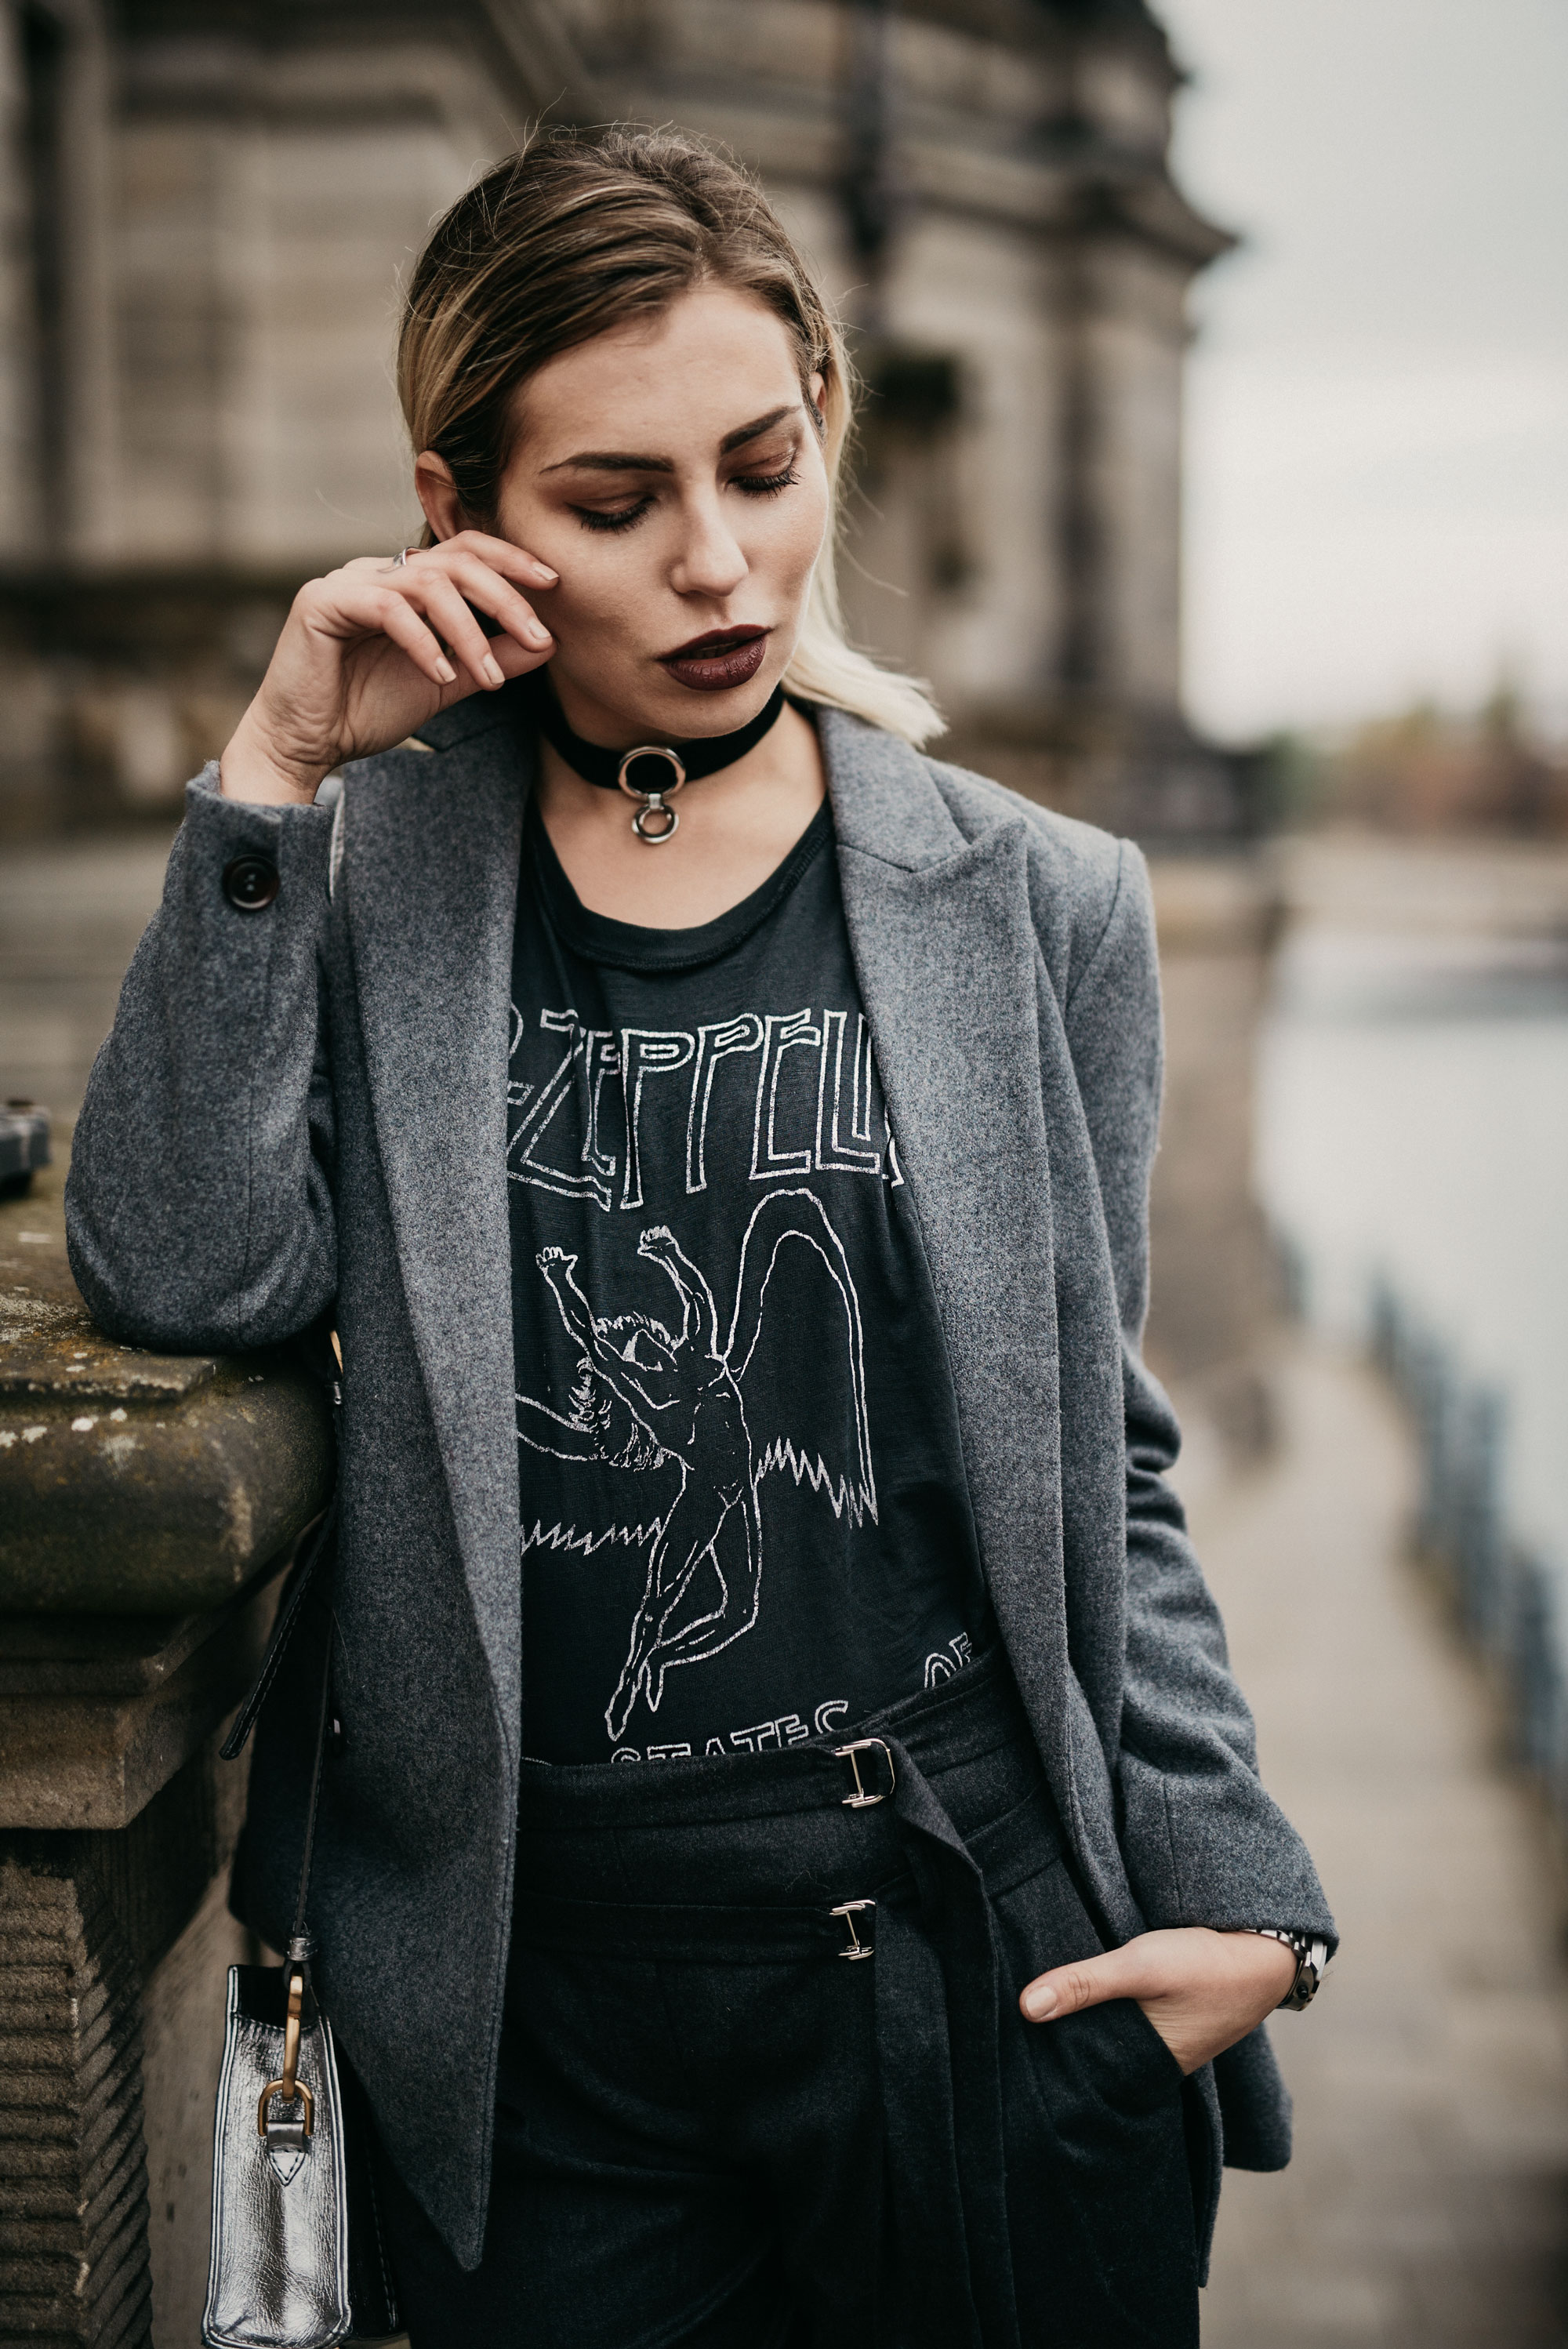 Led Zepplin band shirt | style: edgy, chic, grey | location: Berlin Museumsinsel | editorial blog shooting